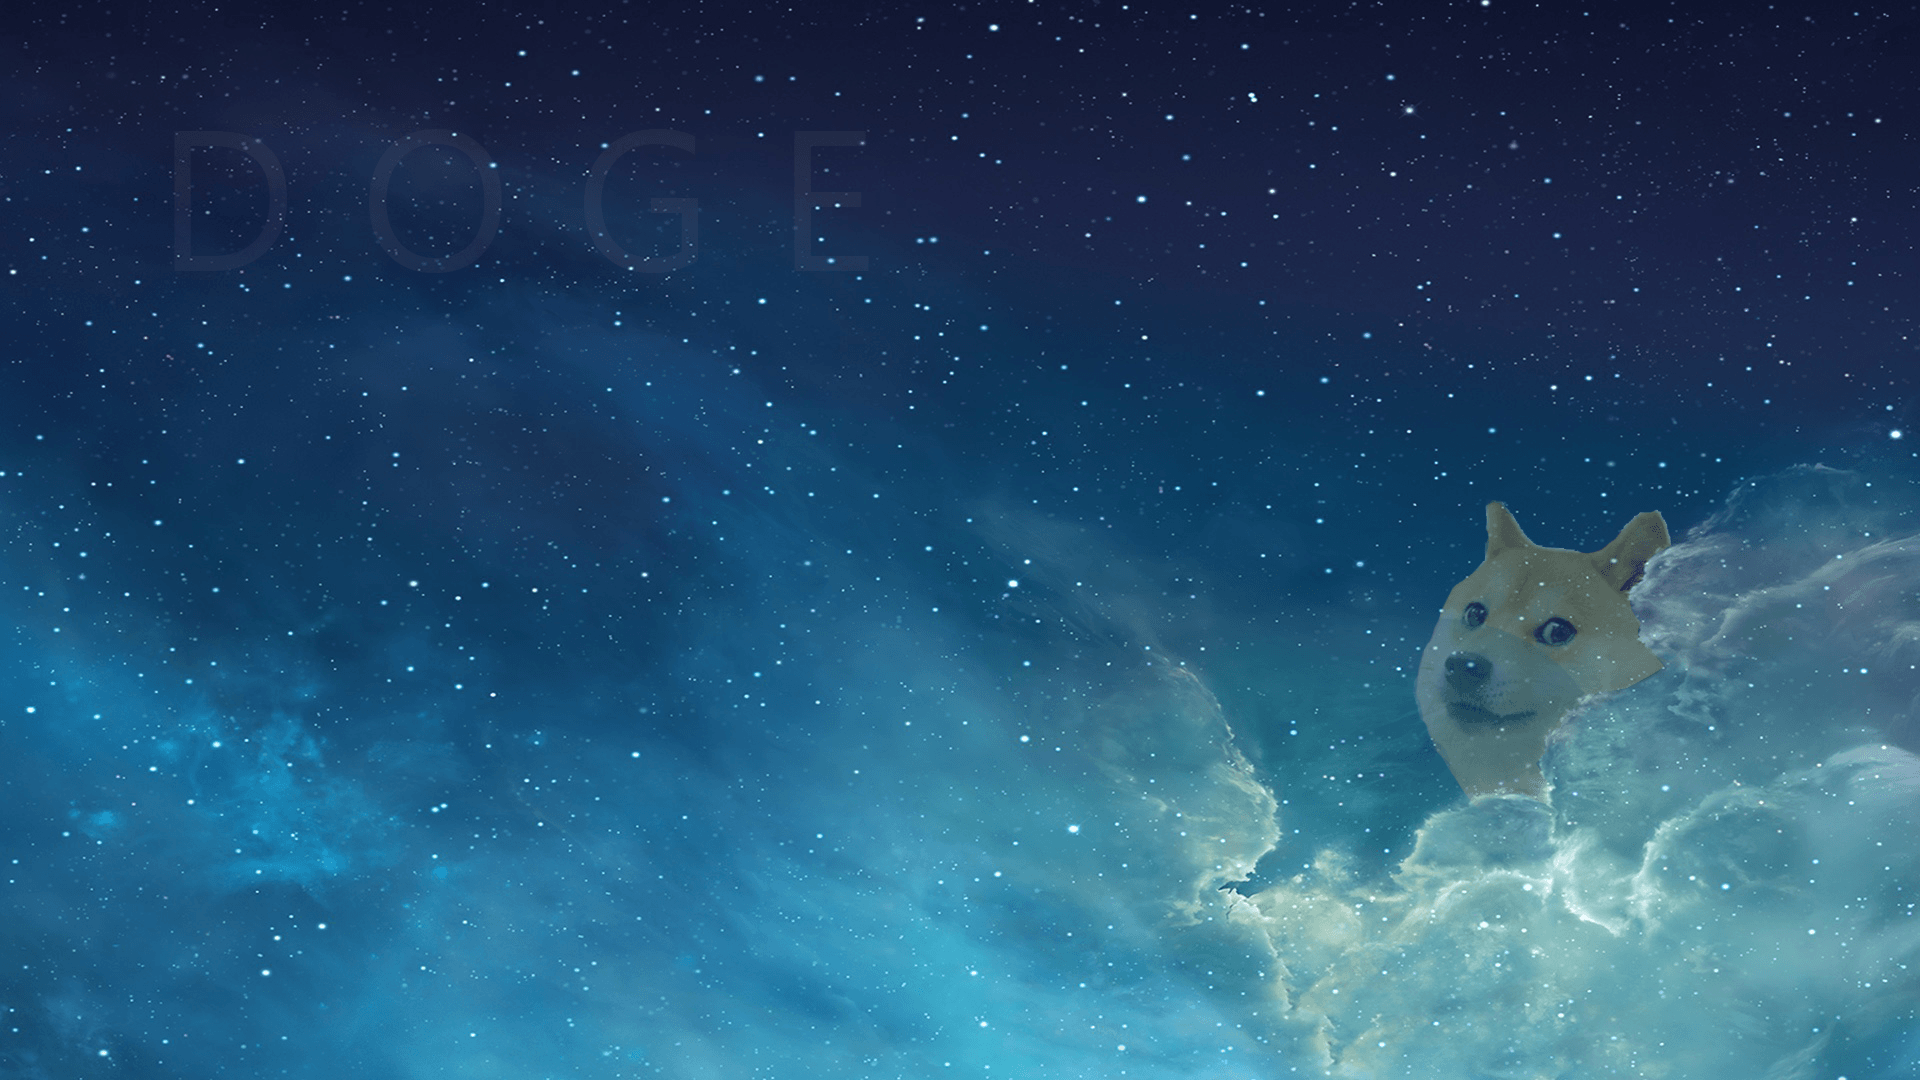 Doge Wallpaper 1920x1080 - WallpaperSafari